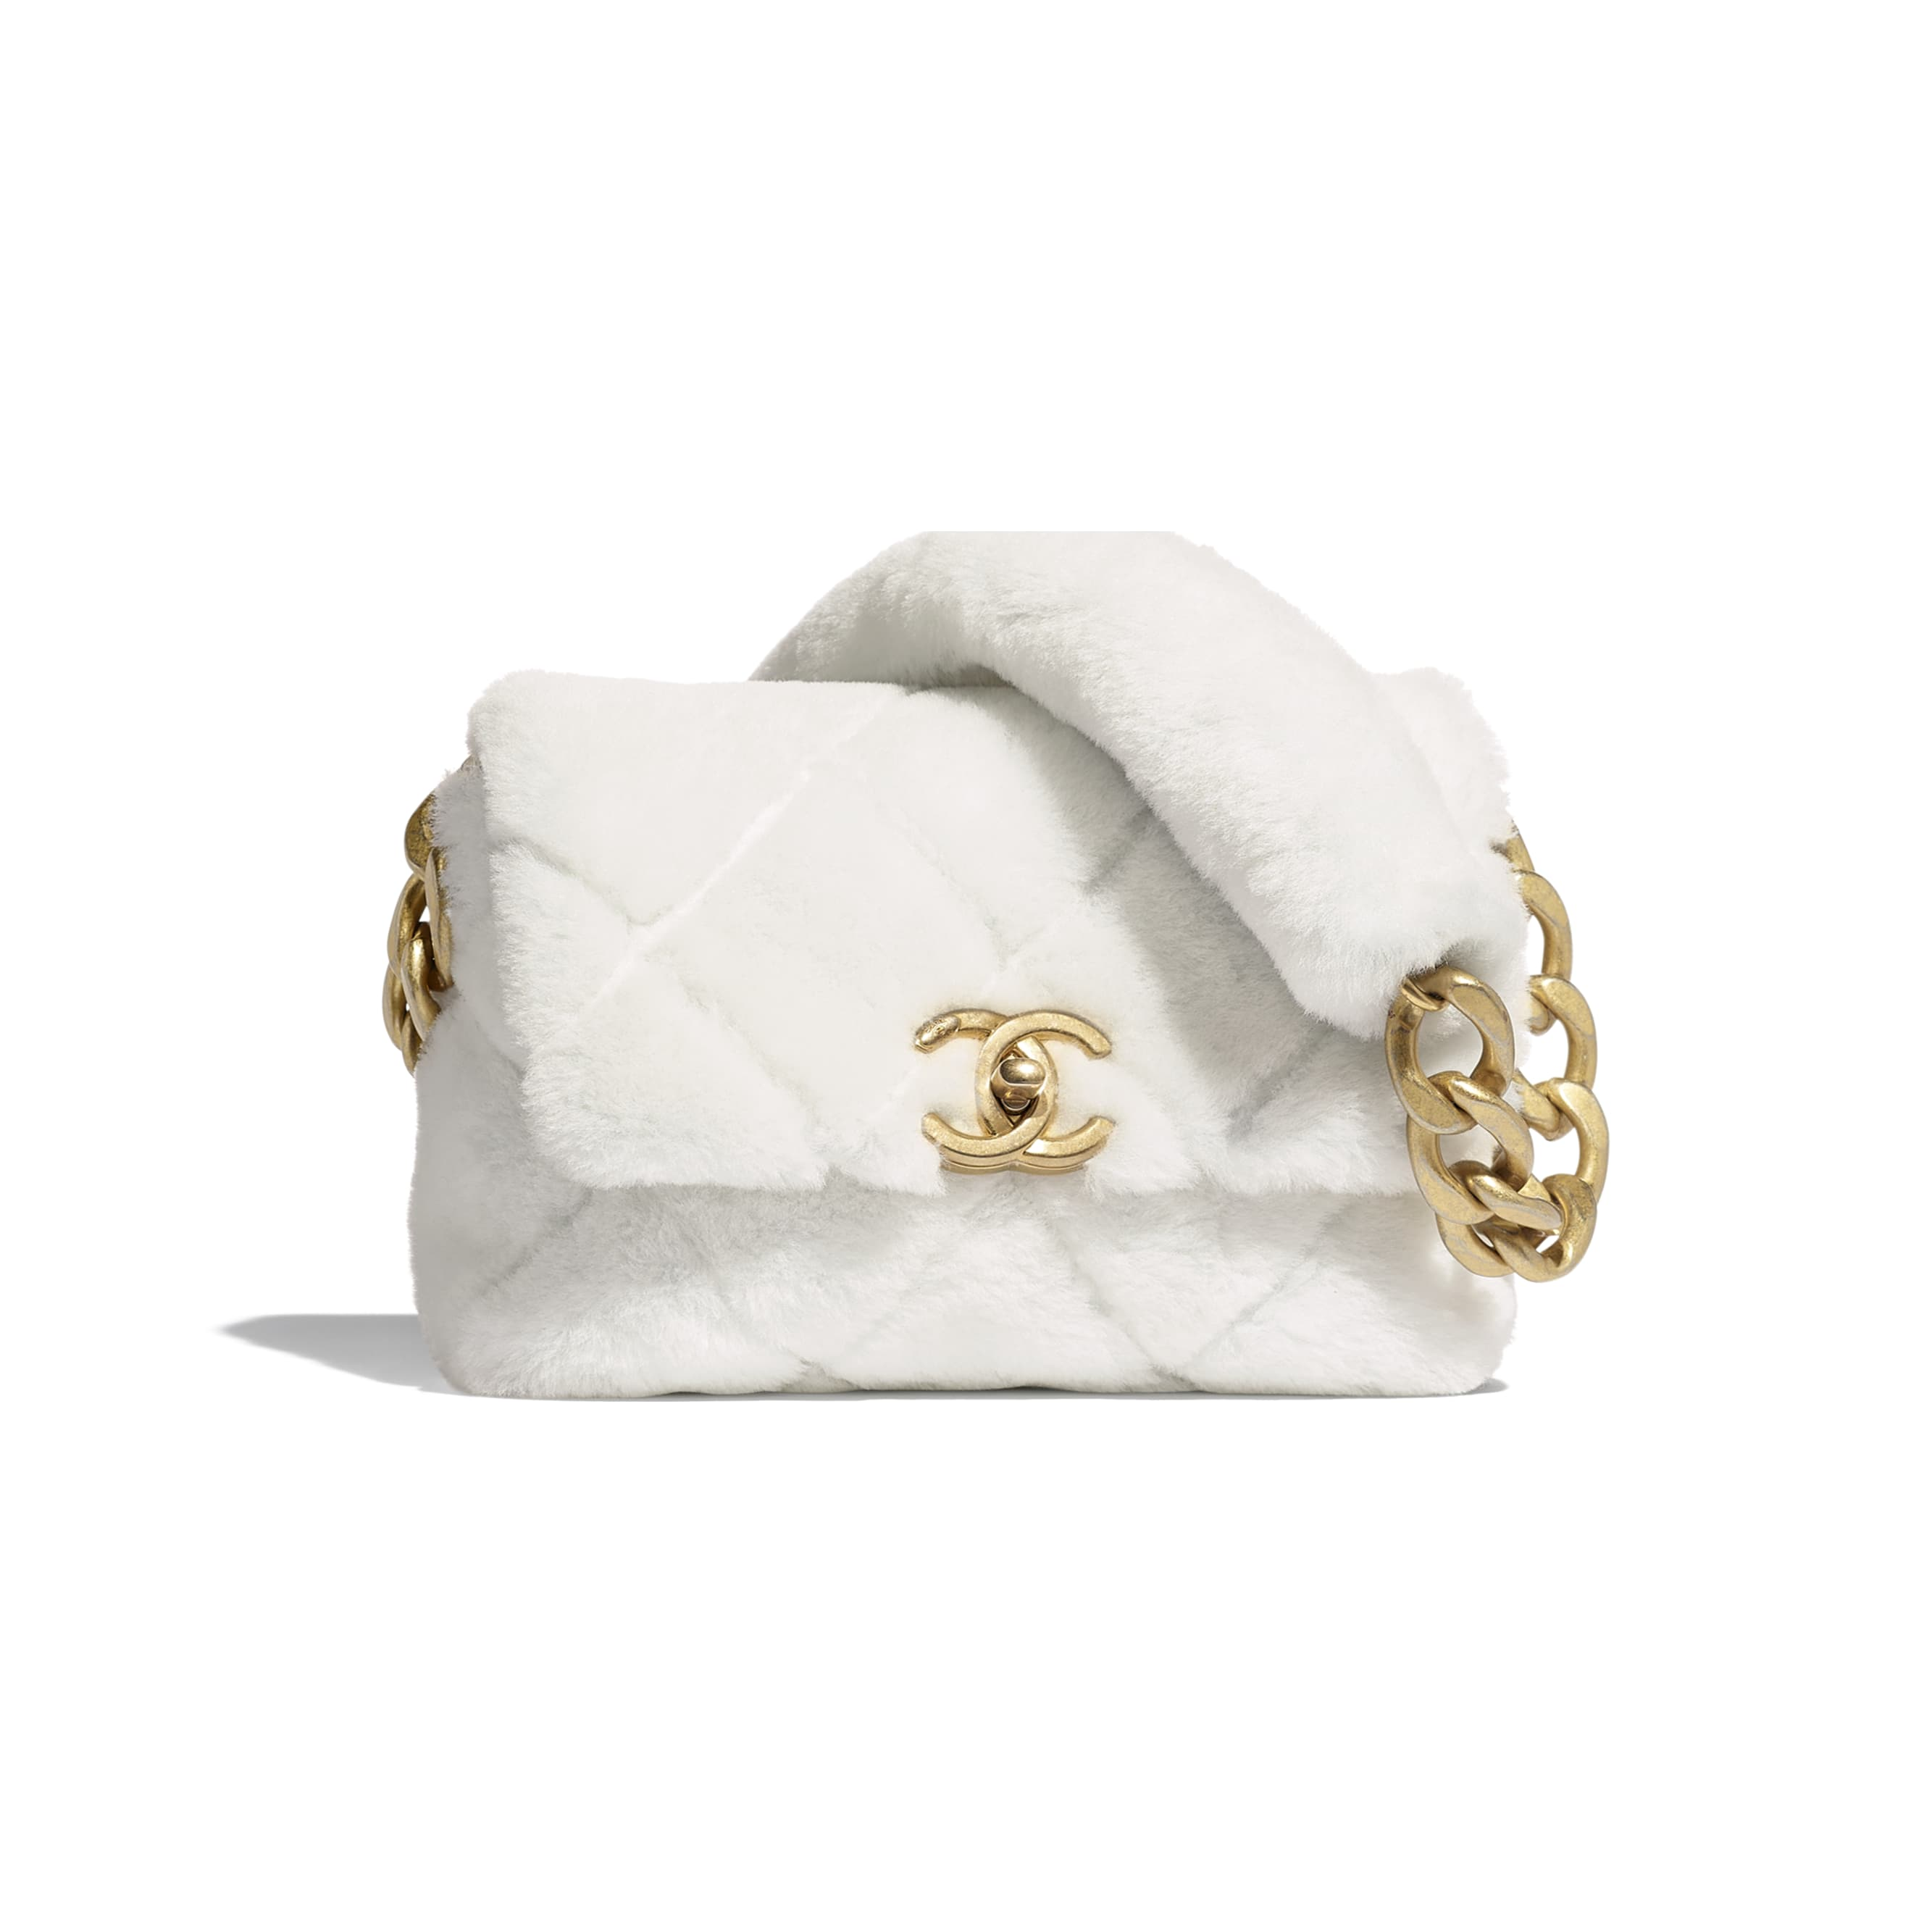 Flap Bag - White - Shearling Lambskin & Gold-Tone Metal - CHANEL - Default view - see standard sized version